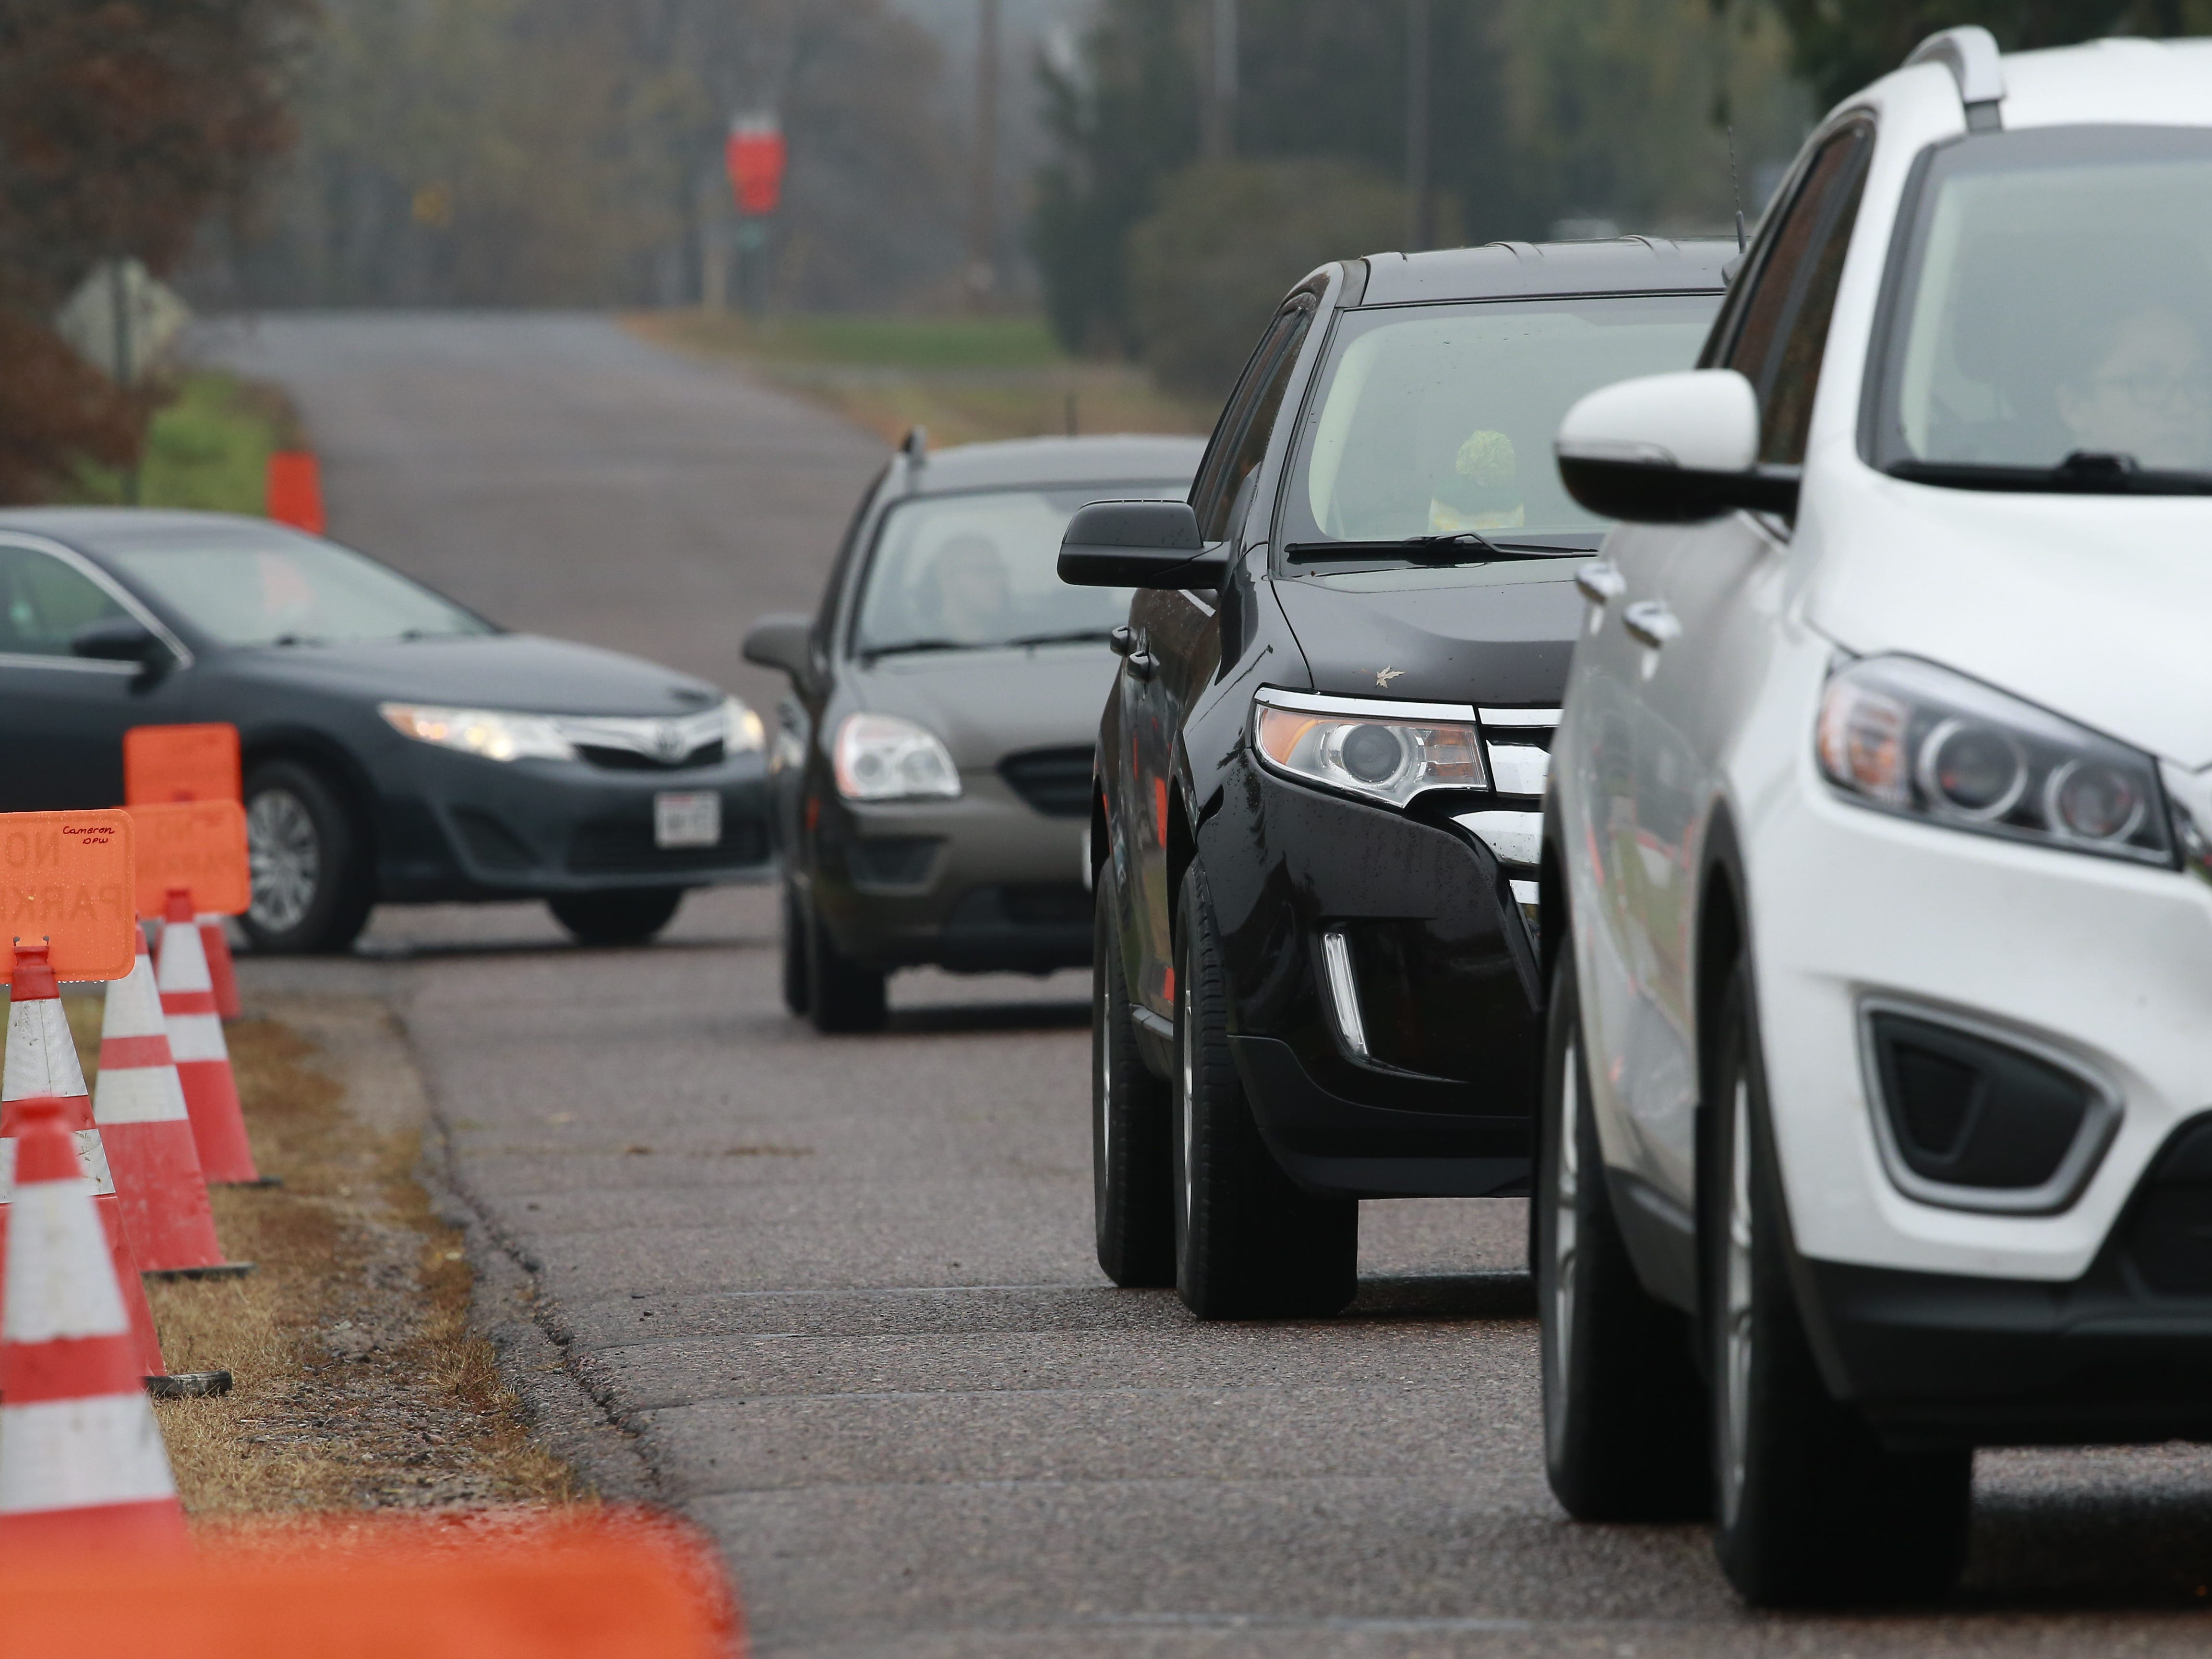 A line of cars leaves the visitation of James and Denise Closs on Saturday at St. Peter Catholic Church in Cameron. The couple was found dead in their Barron home on Oct. 15, and their deaths have been ruled homicides. Their 13-year-old daughter, Jayme, remains missing and is considered endangered.